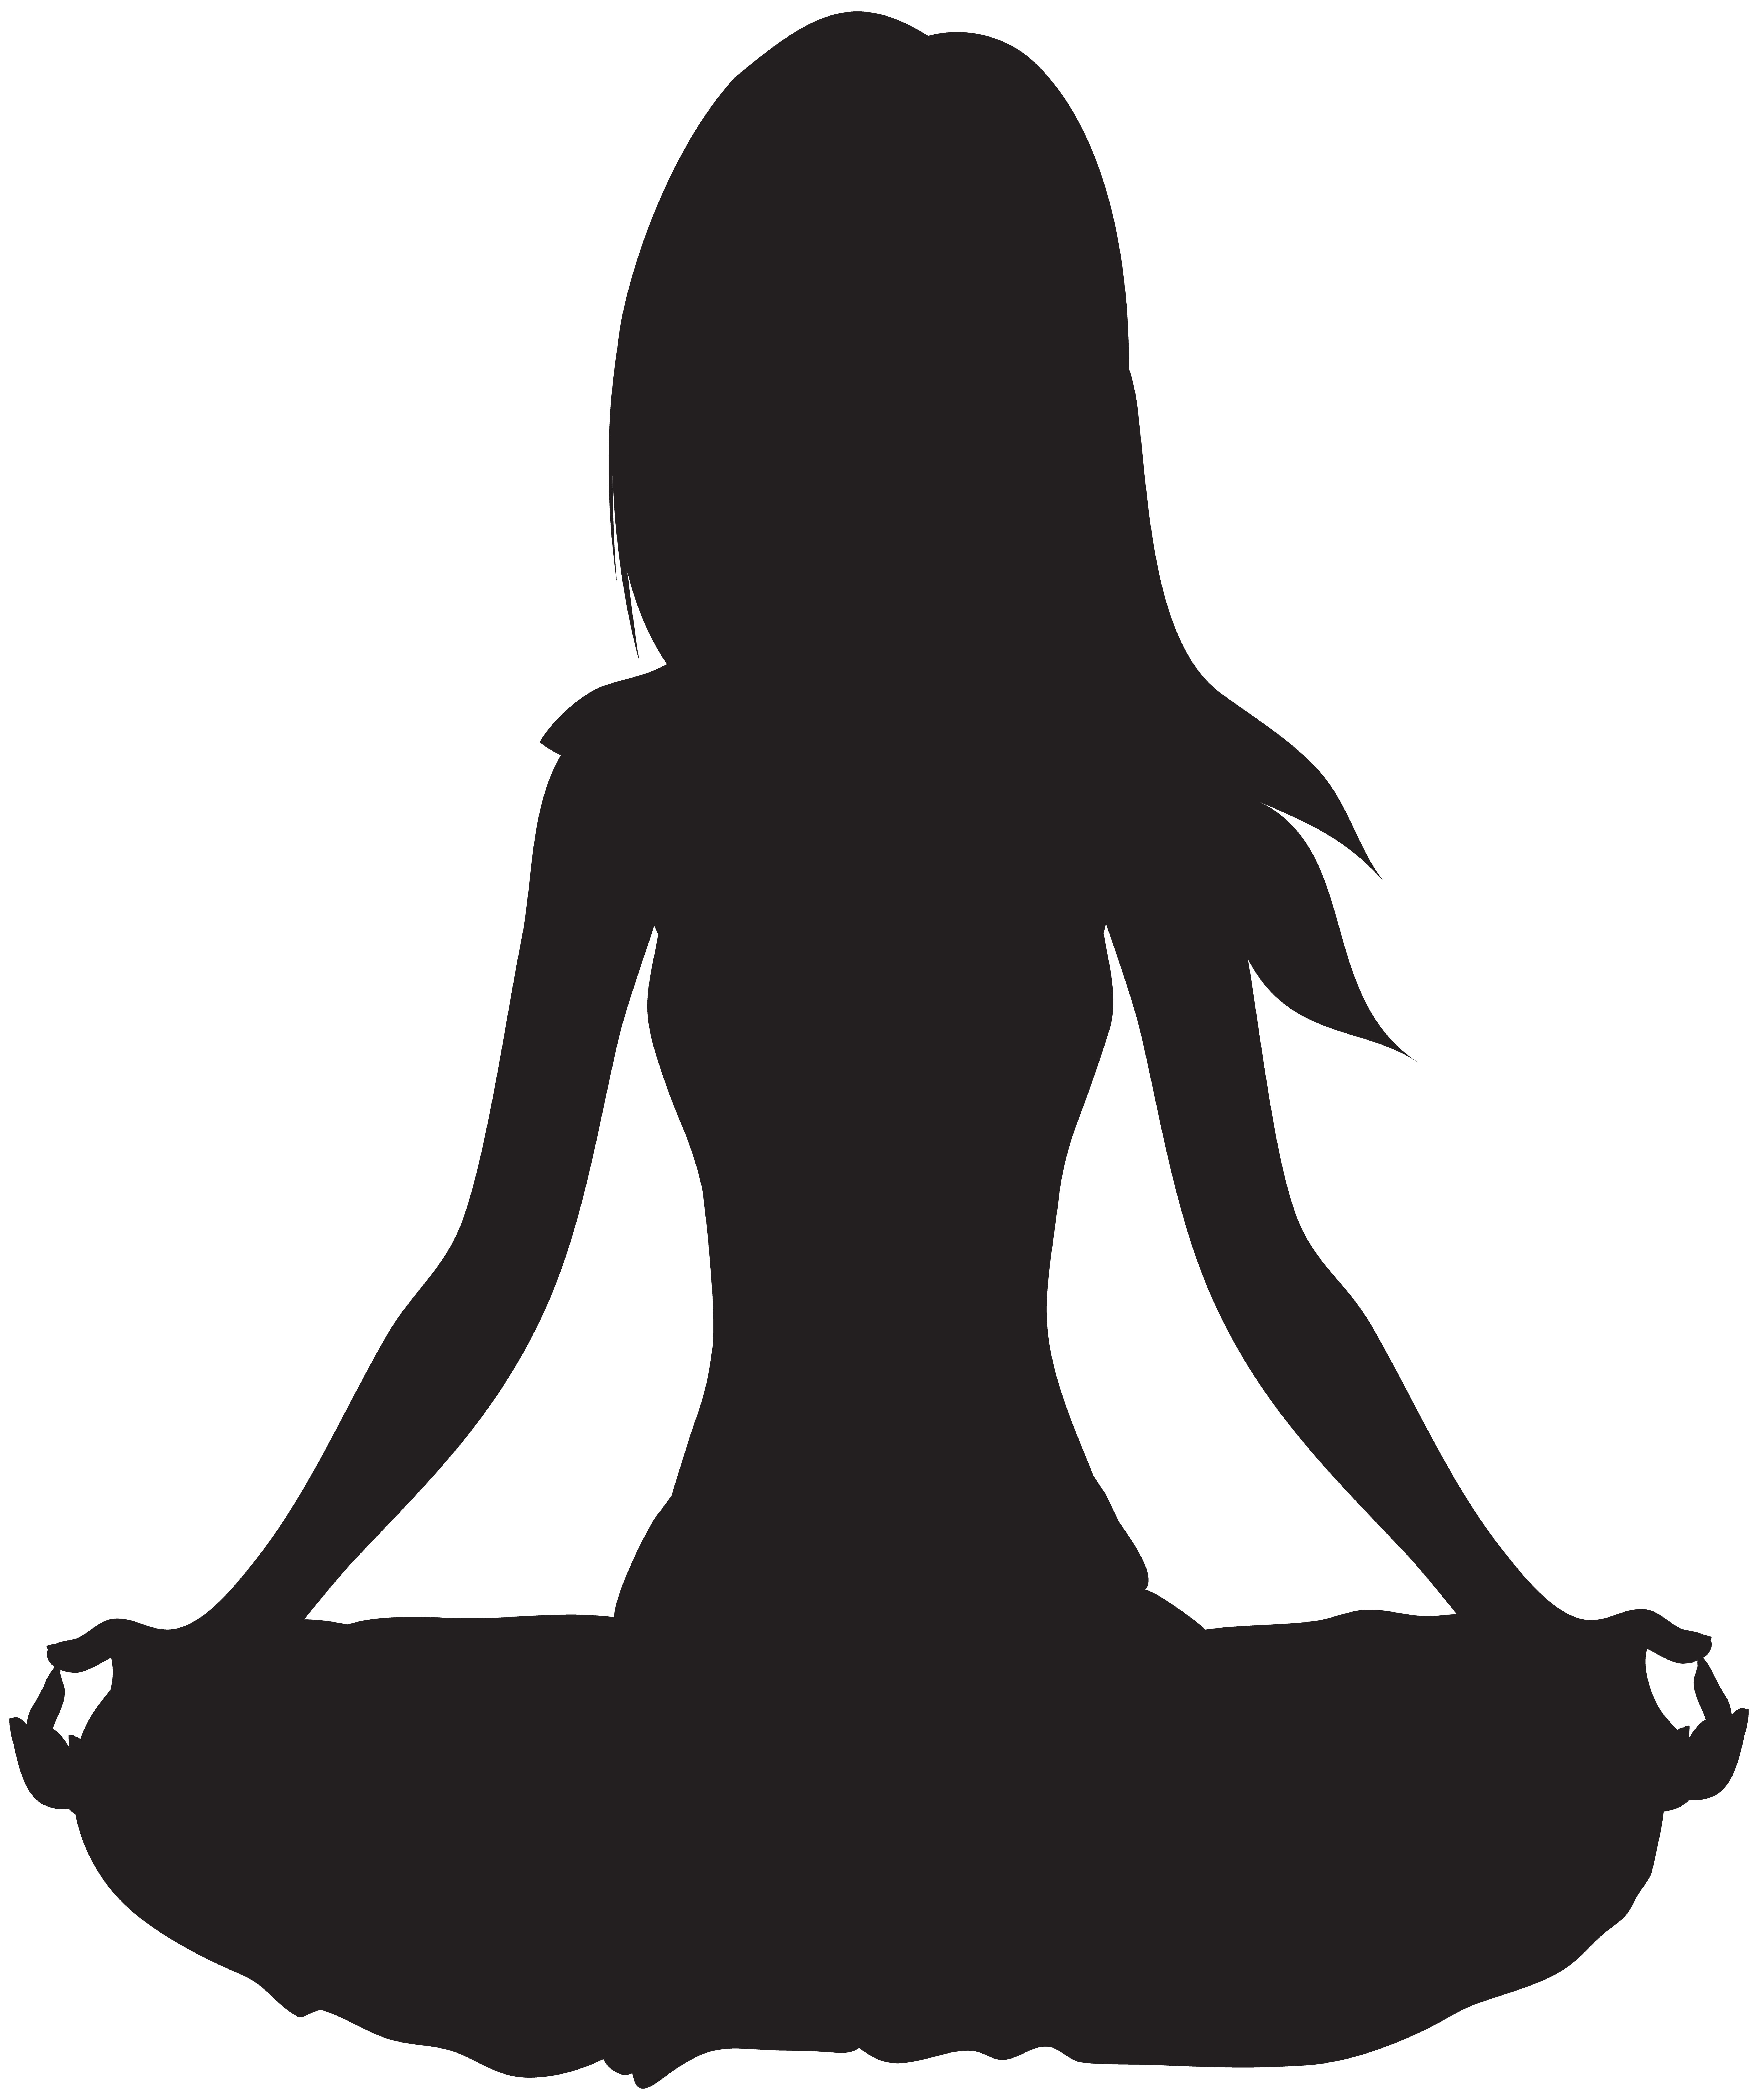 Clipart meditate clip library library Meditate Silhouette PNG Clip Art   Gallery Yopriceville - High ... clip library library